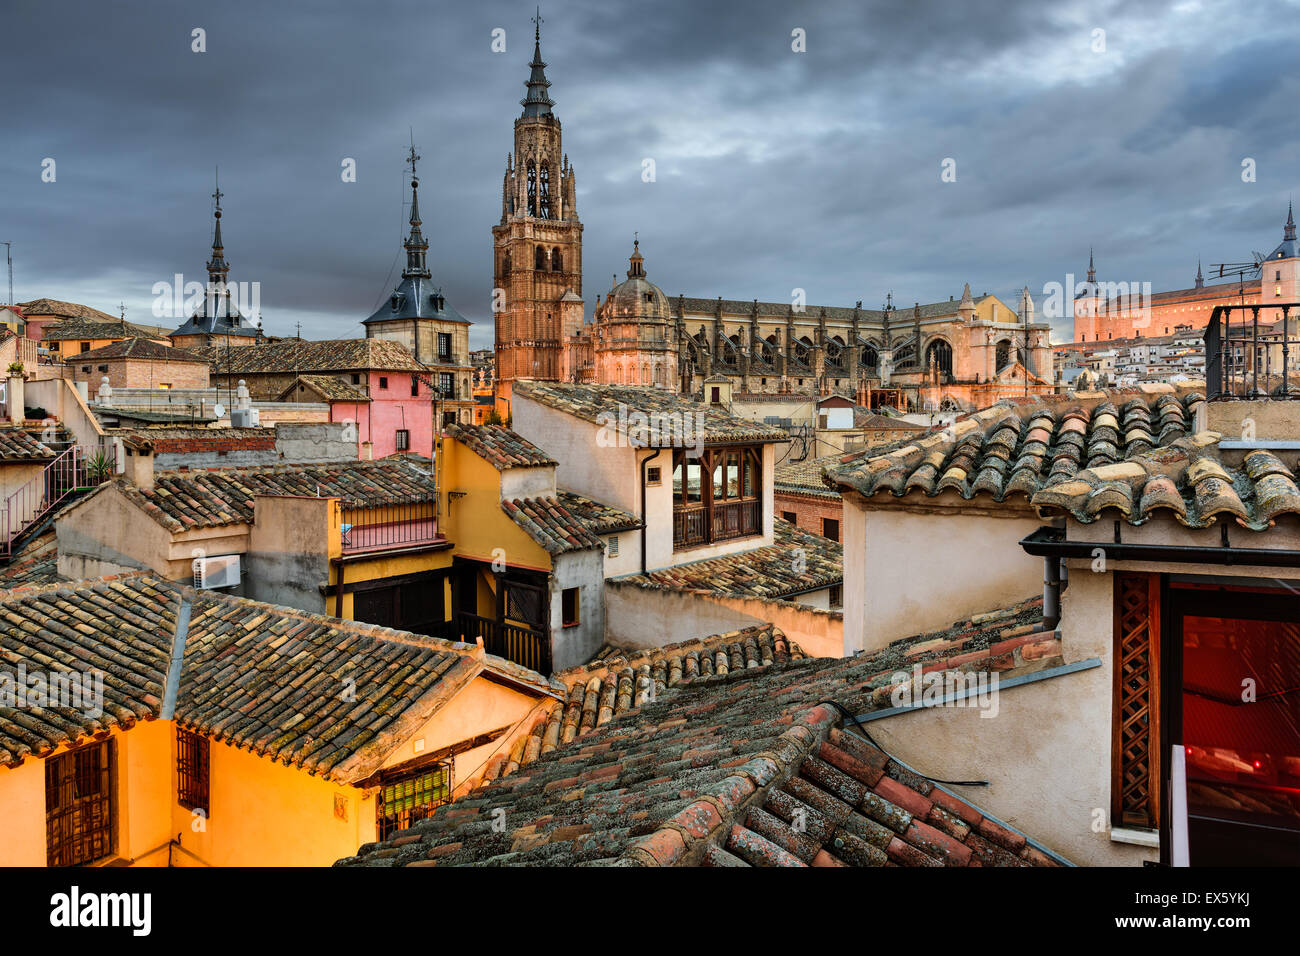 Toledo, Spain view of the town from a rooftop. - Stock Image